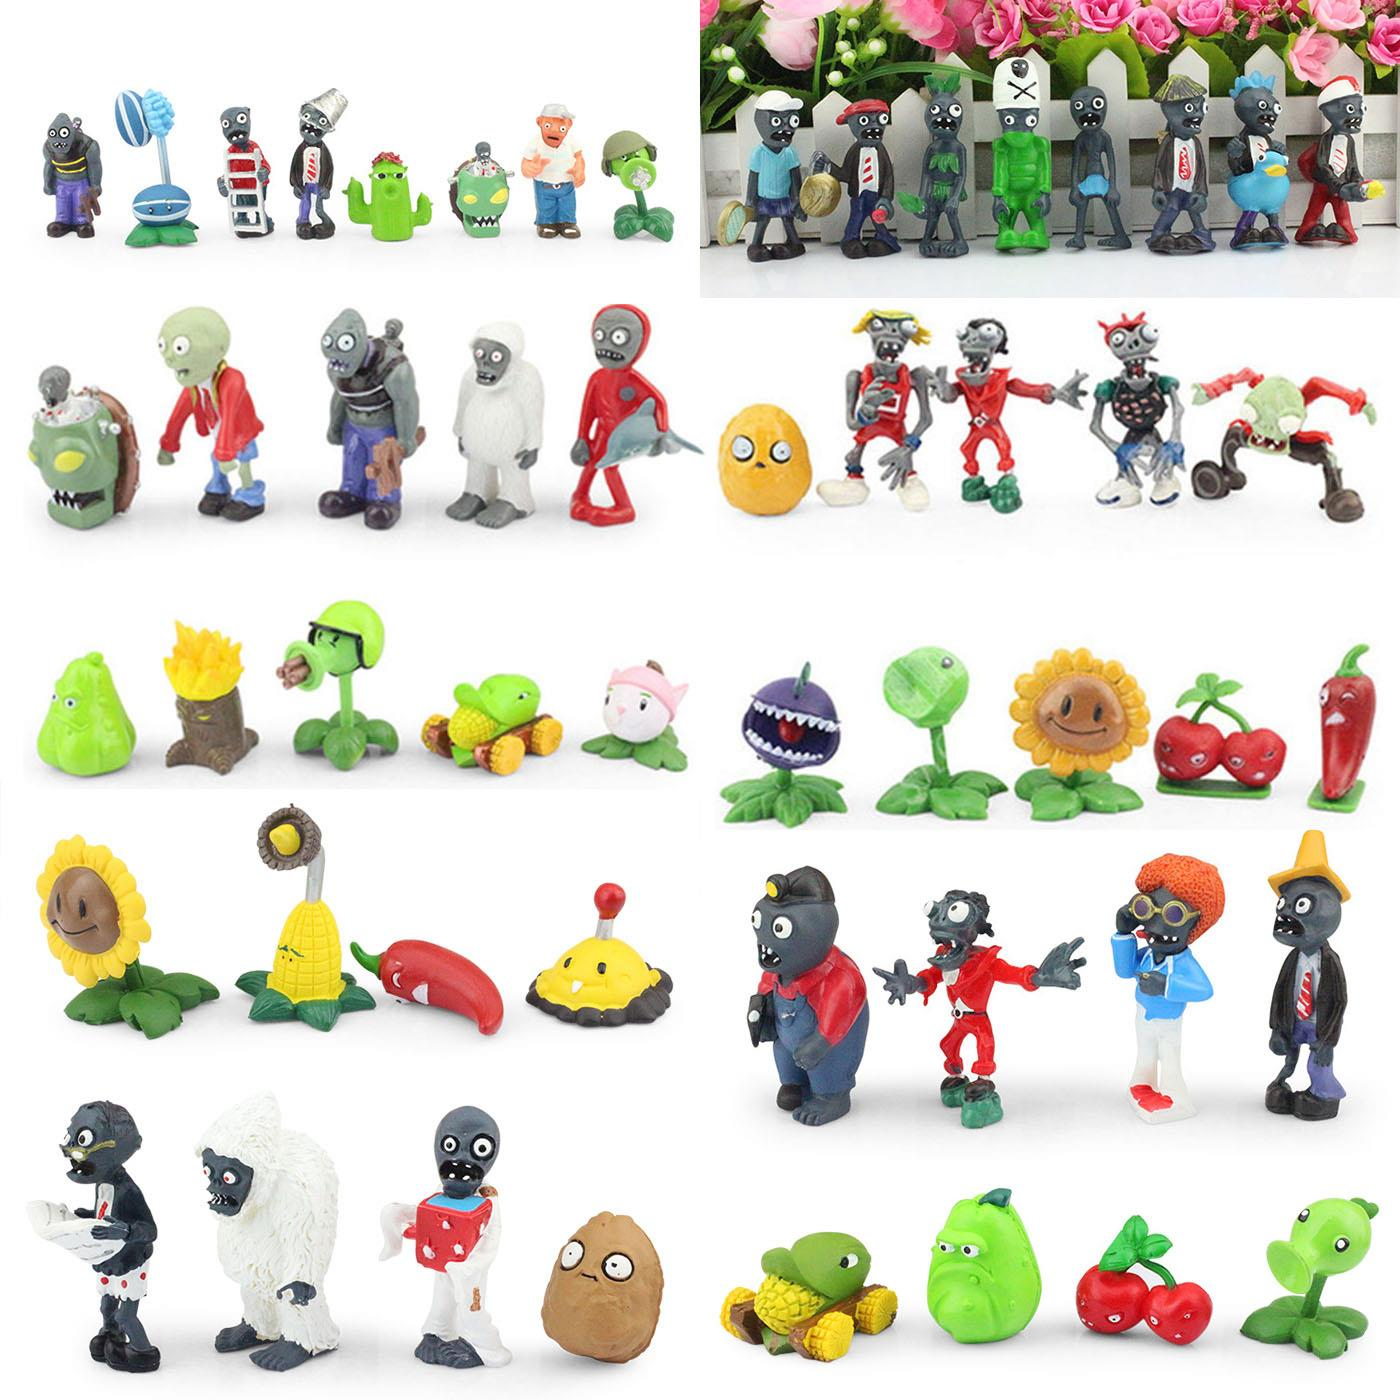 52pcs/set Plants VS Zombies PVZ Collection Figures Toy all the Plants and zombies figure Toys Free Shipping the zombies колин бланстоун род аргент the zombies featuring colin blunstone